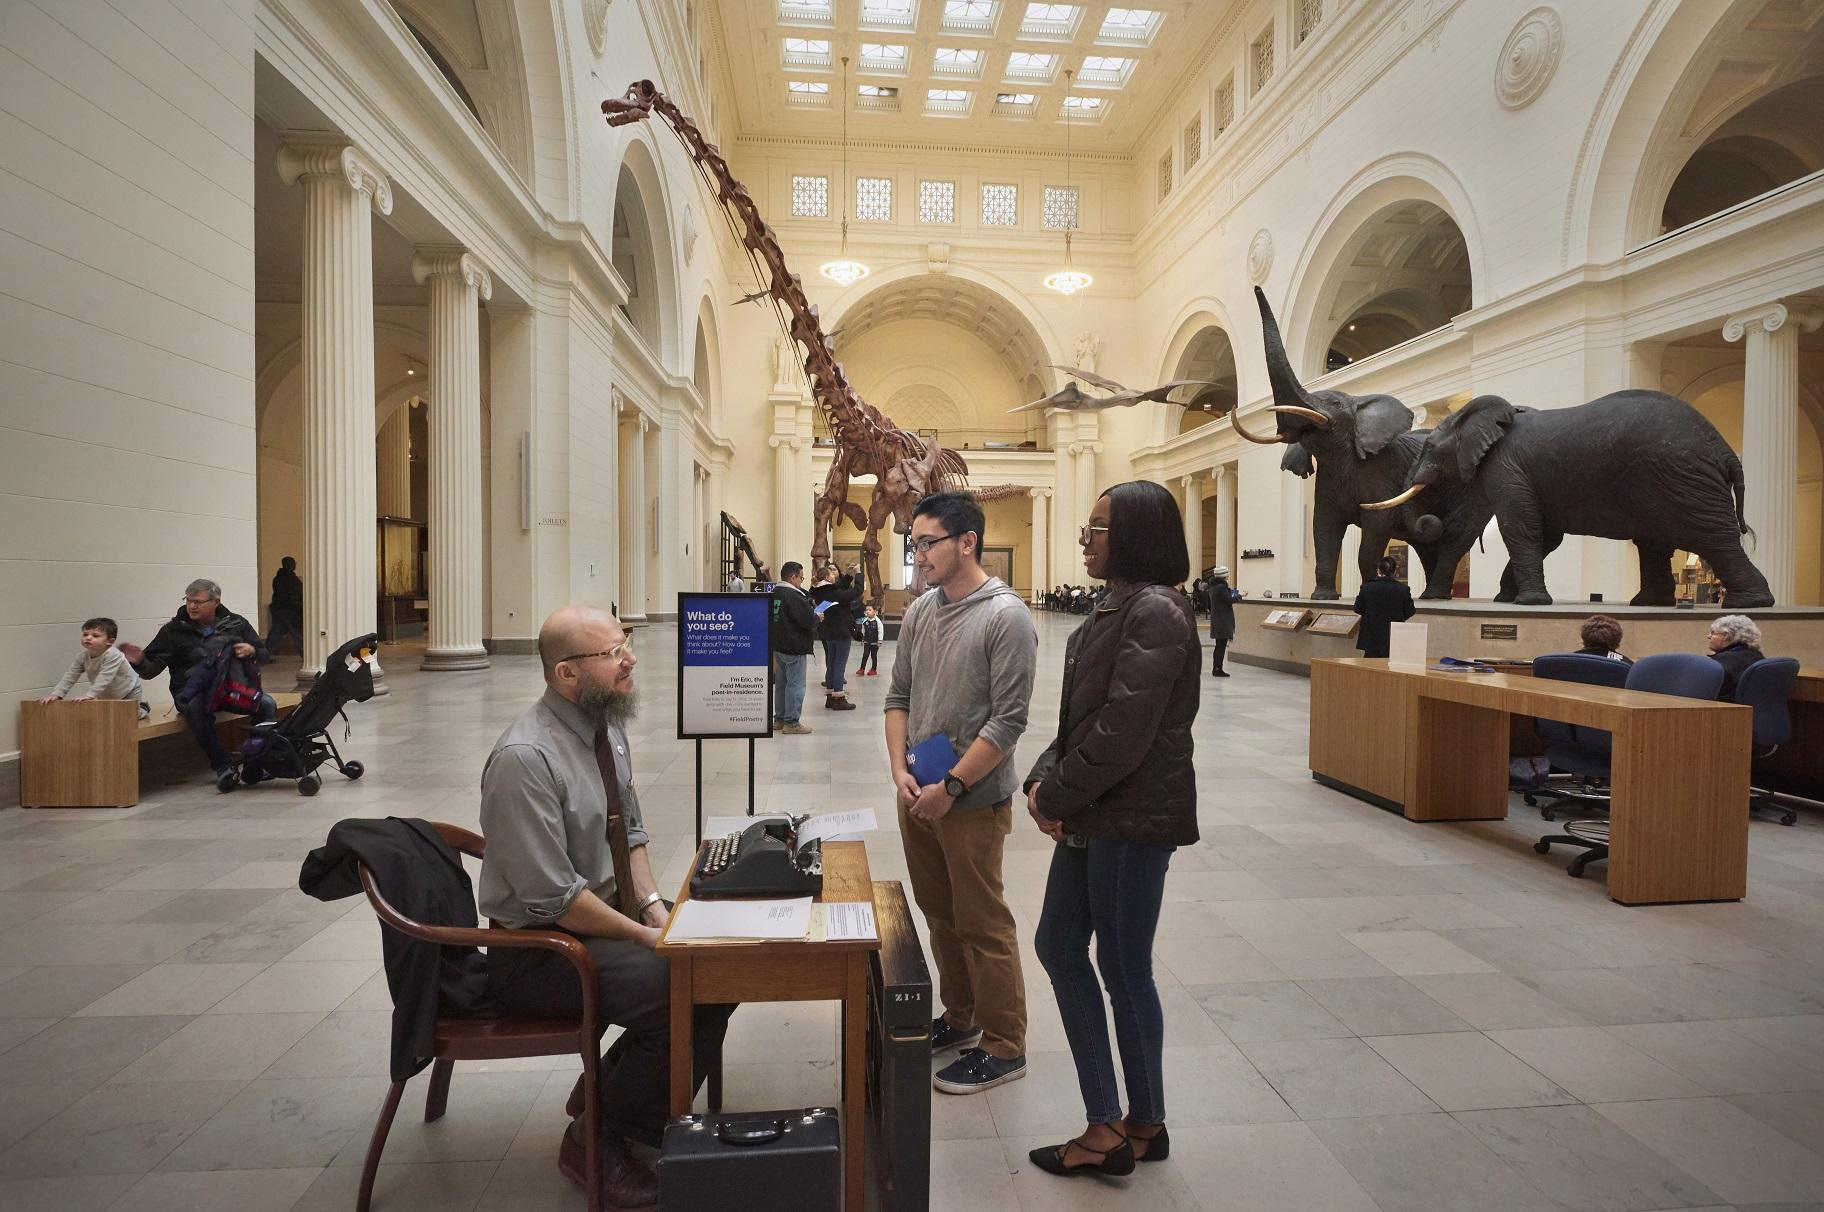 Eric Elshtain talks with visitors in the Field Museum's Stanley Field Hall. (John Weinstein / The Field Museum)